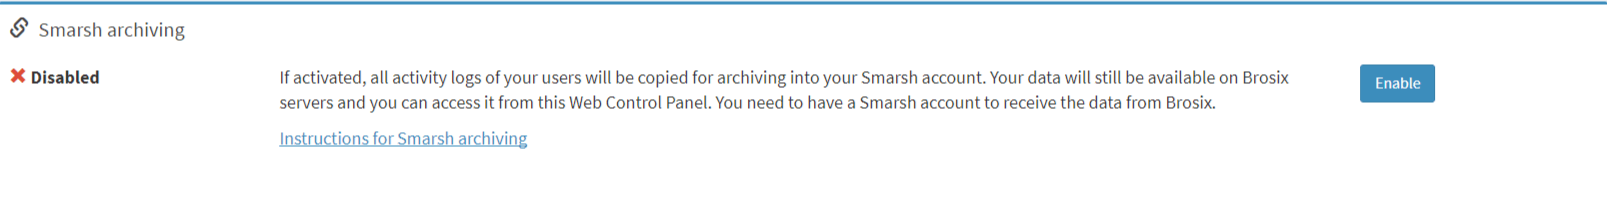 Here is the option how to activate Smarsh archiving looks in Web Control Panel